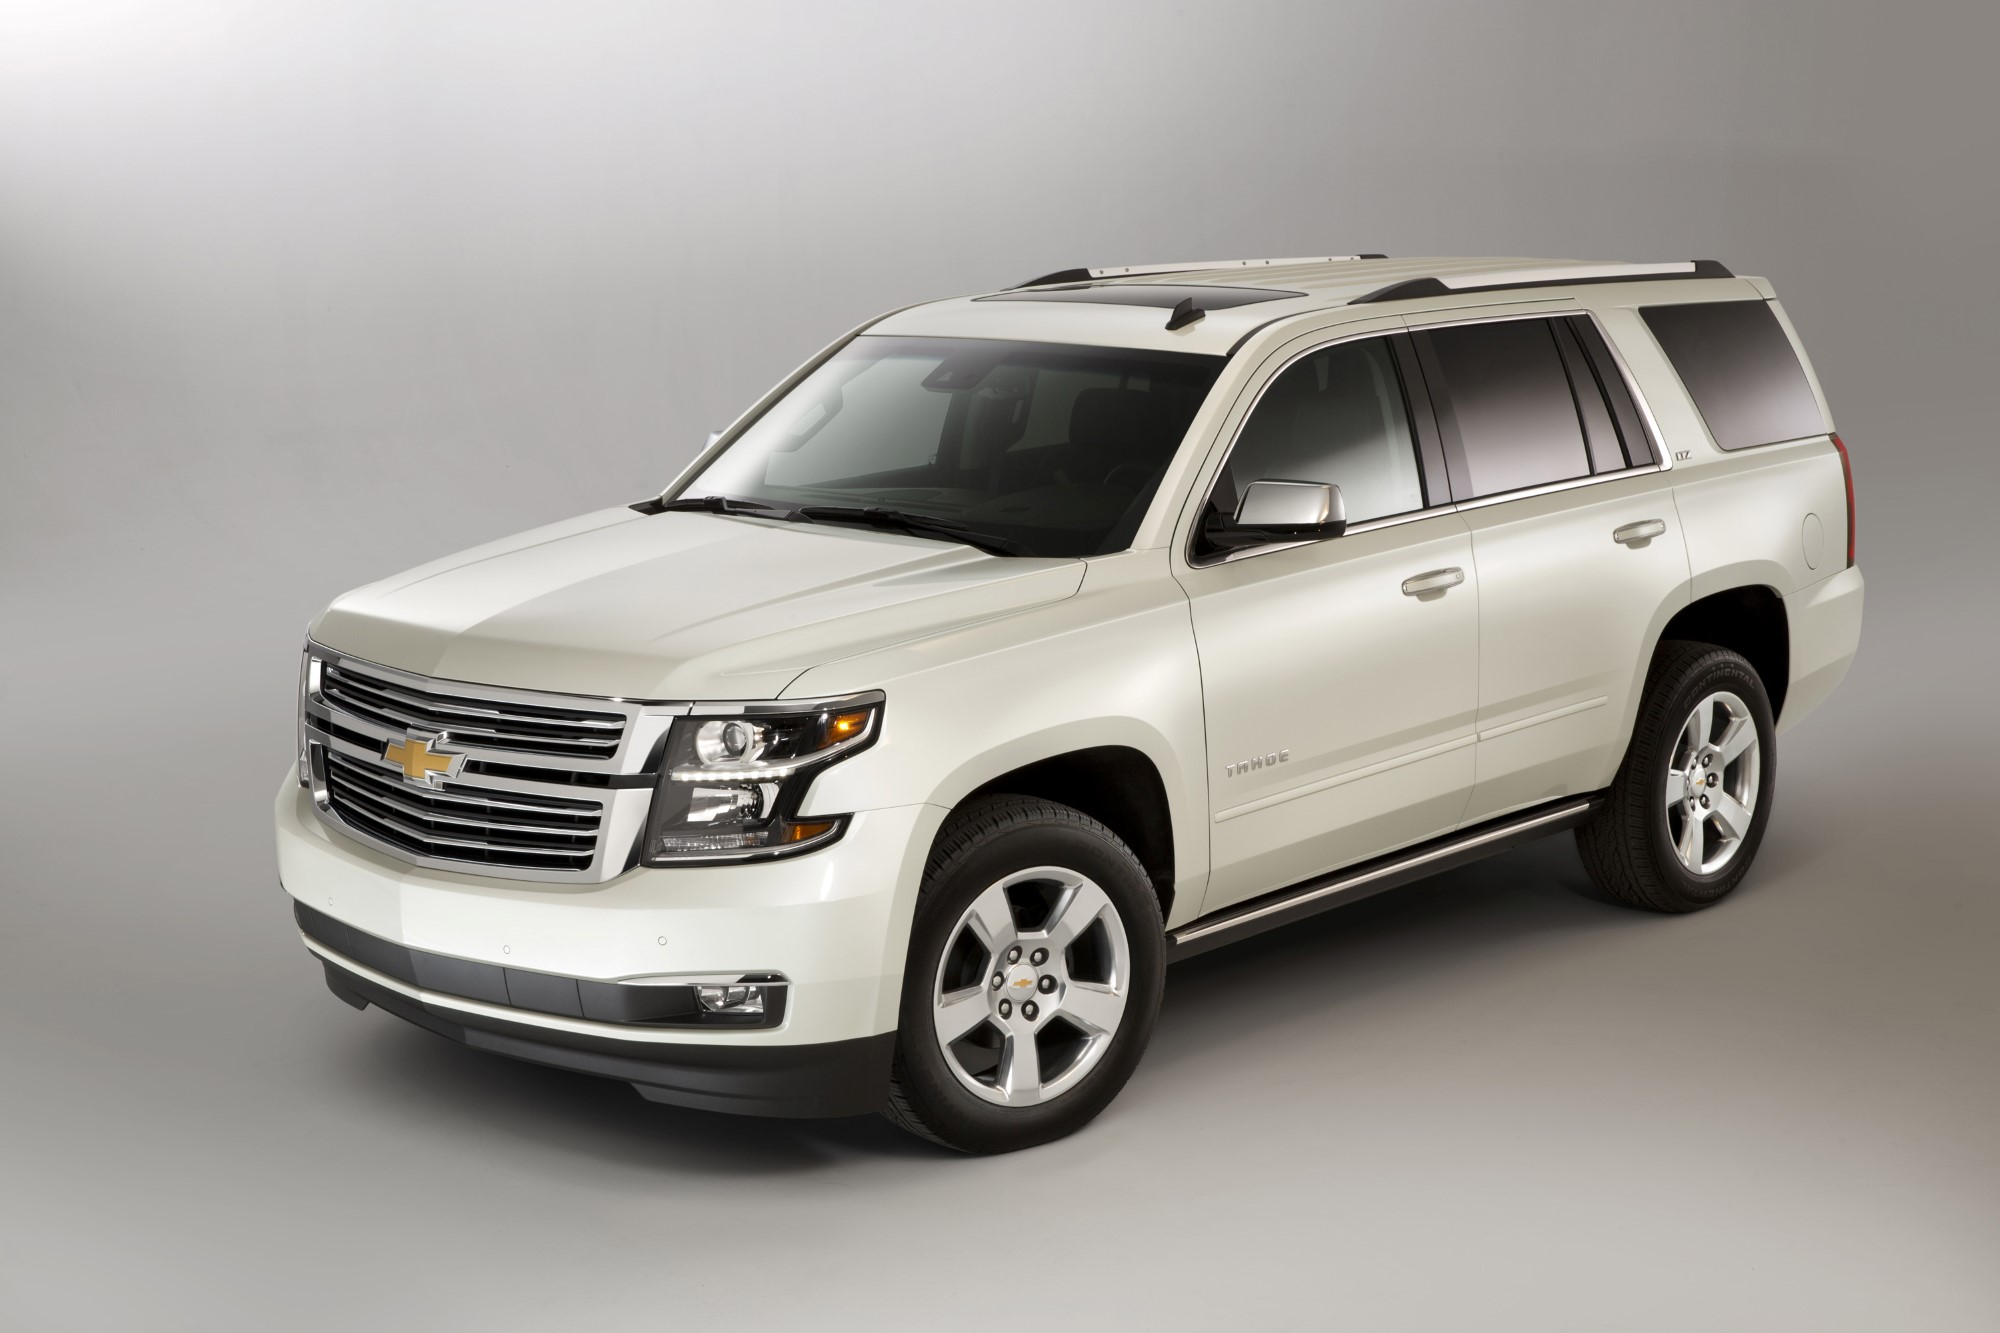 Land Rover Indianapolis >> 2015-chevrolet-tahoe_100458198_h.jpg